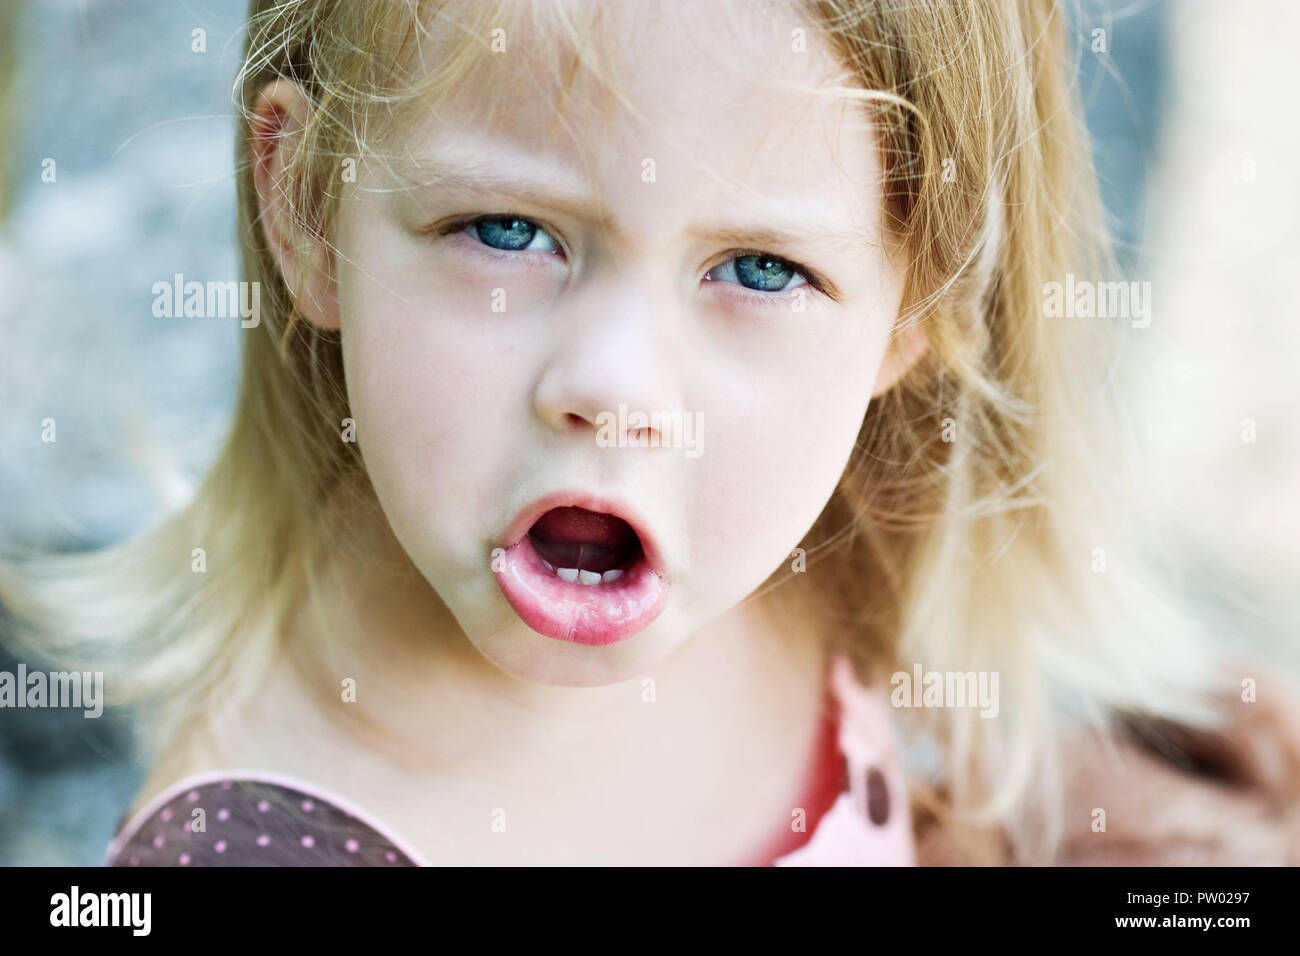 Cute blond child angry and throwing a temper tantrum Stock Photo